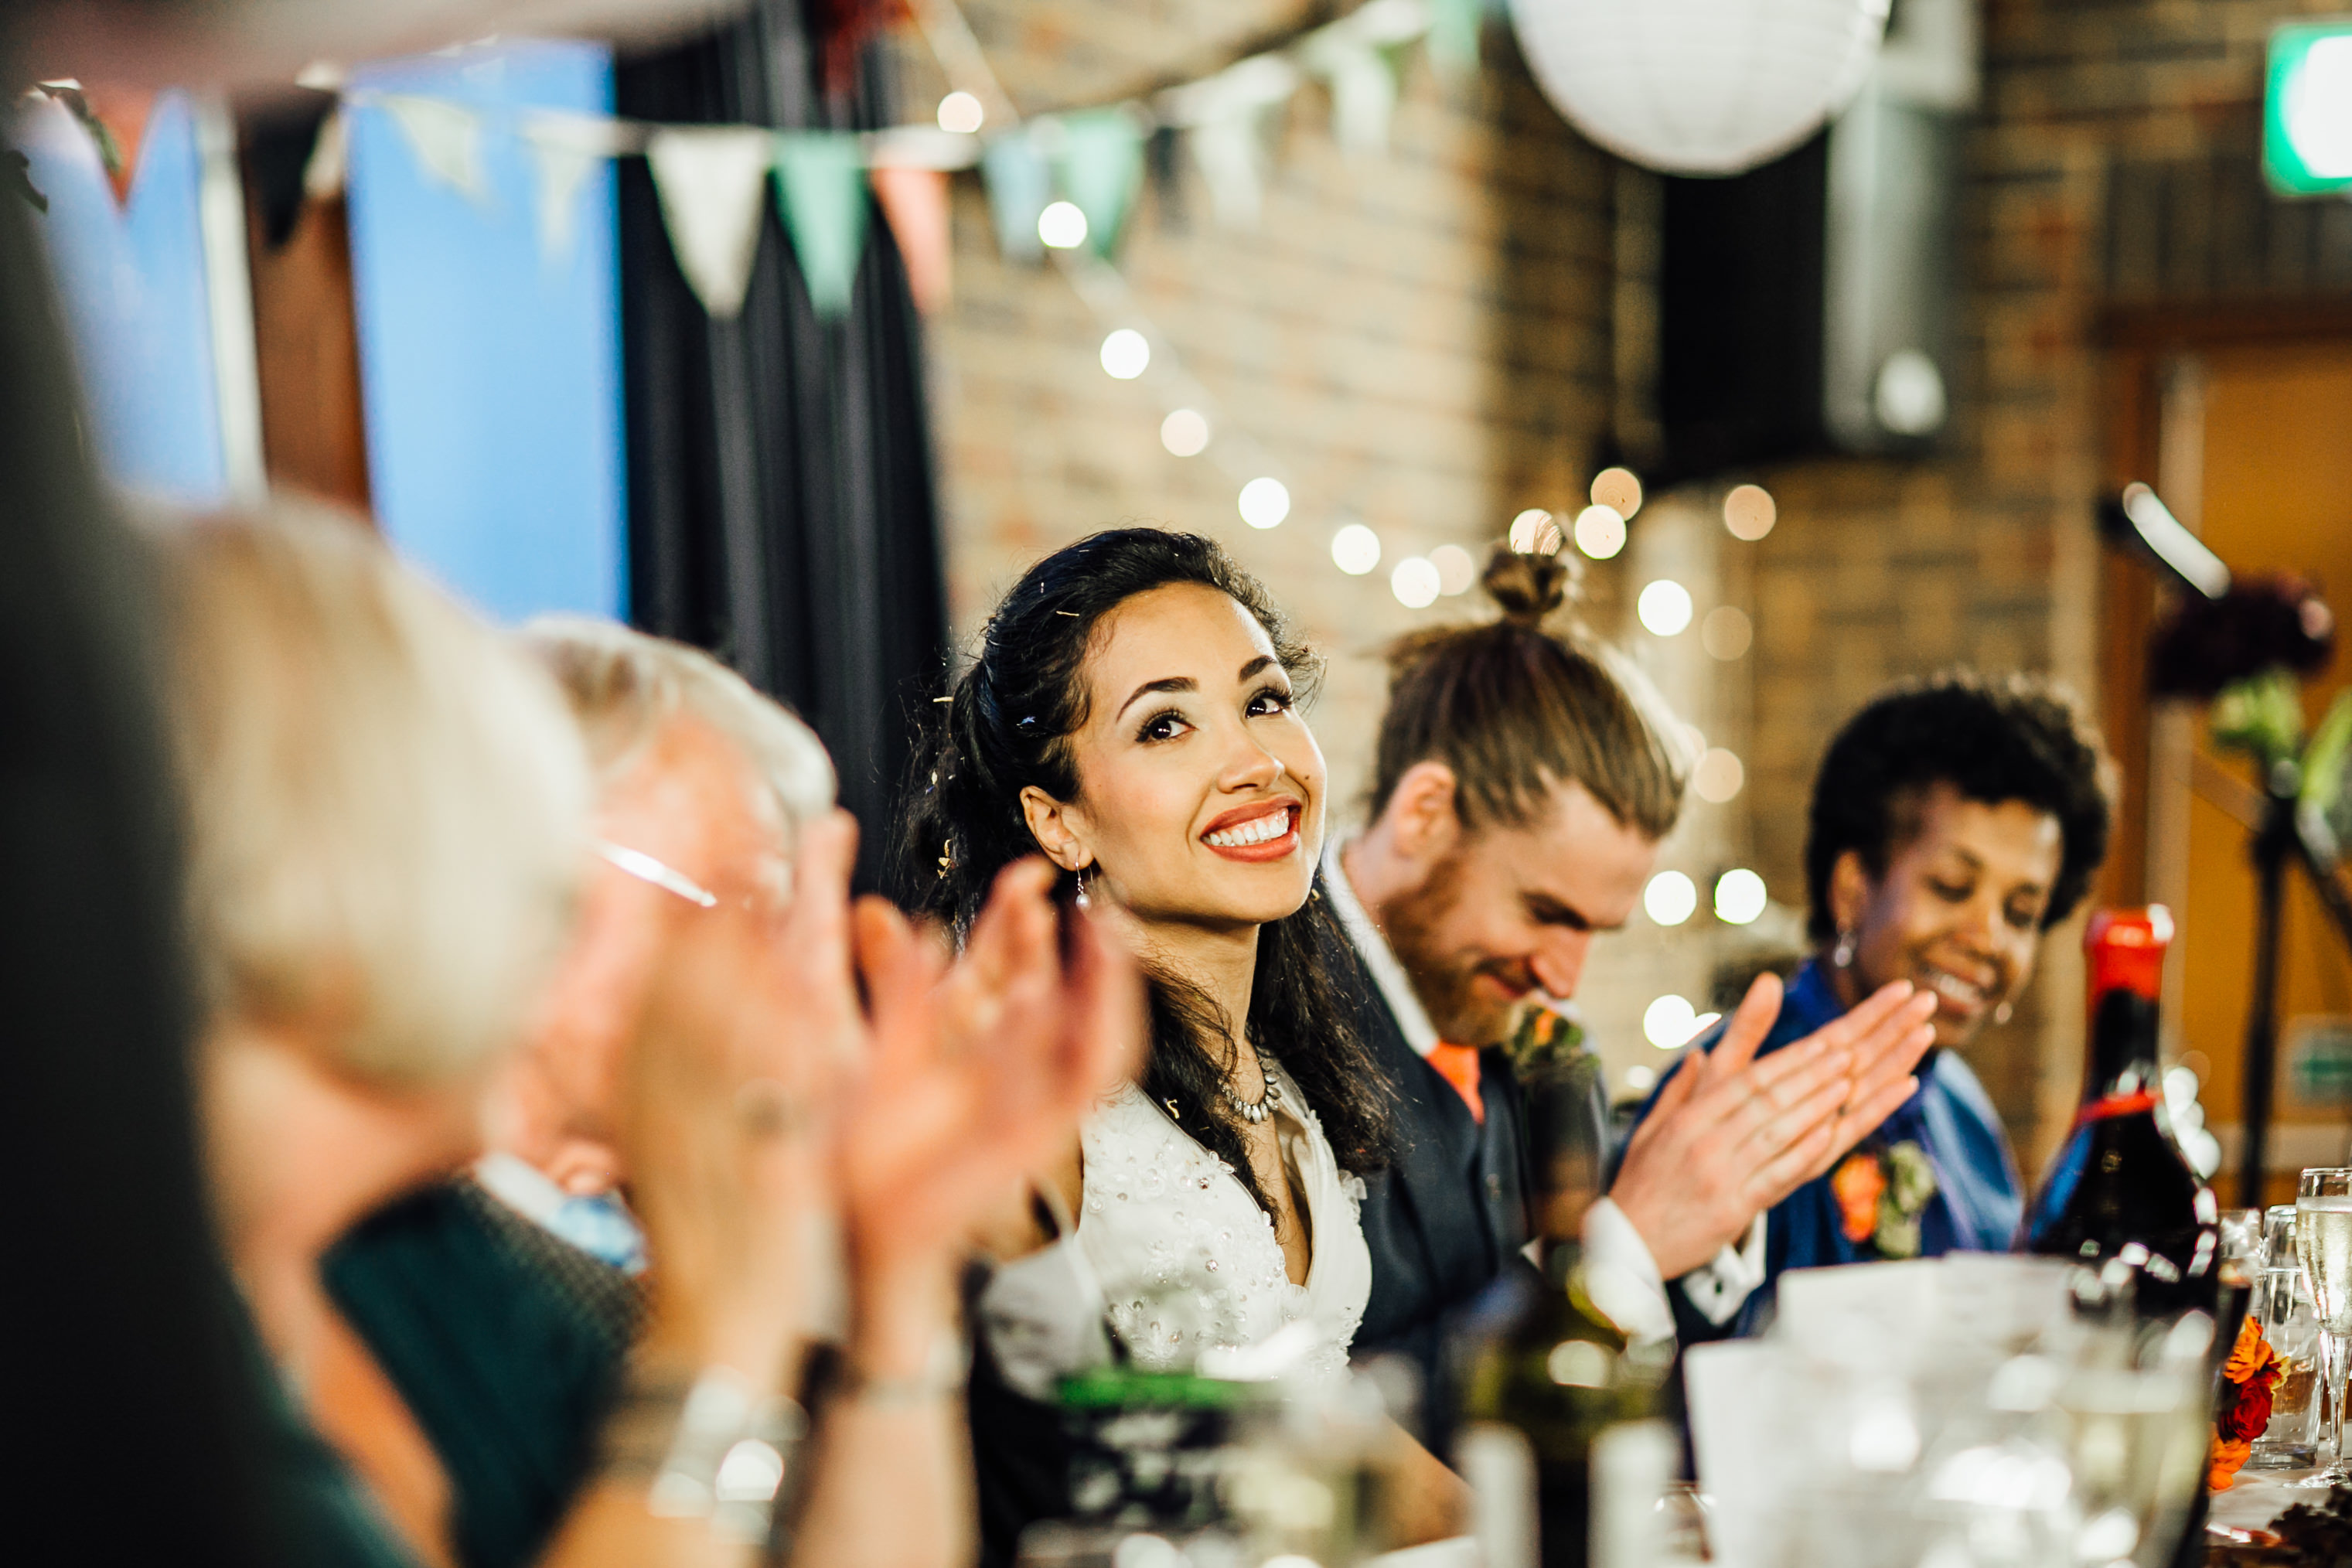 quirky fun autumn wedding in london wedding photographer documentary style